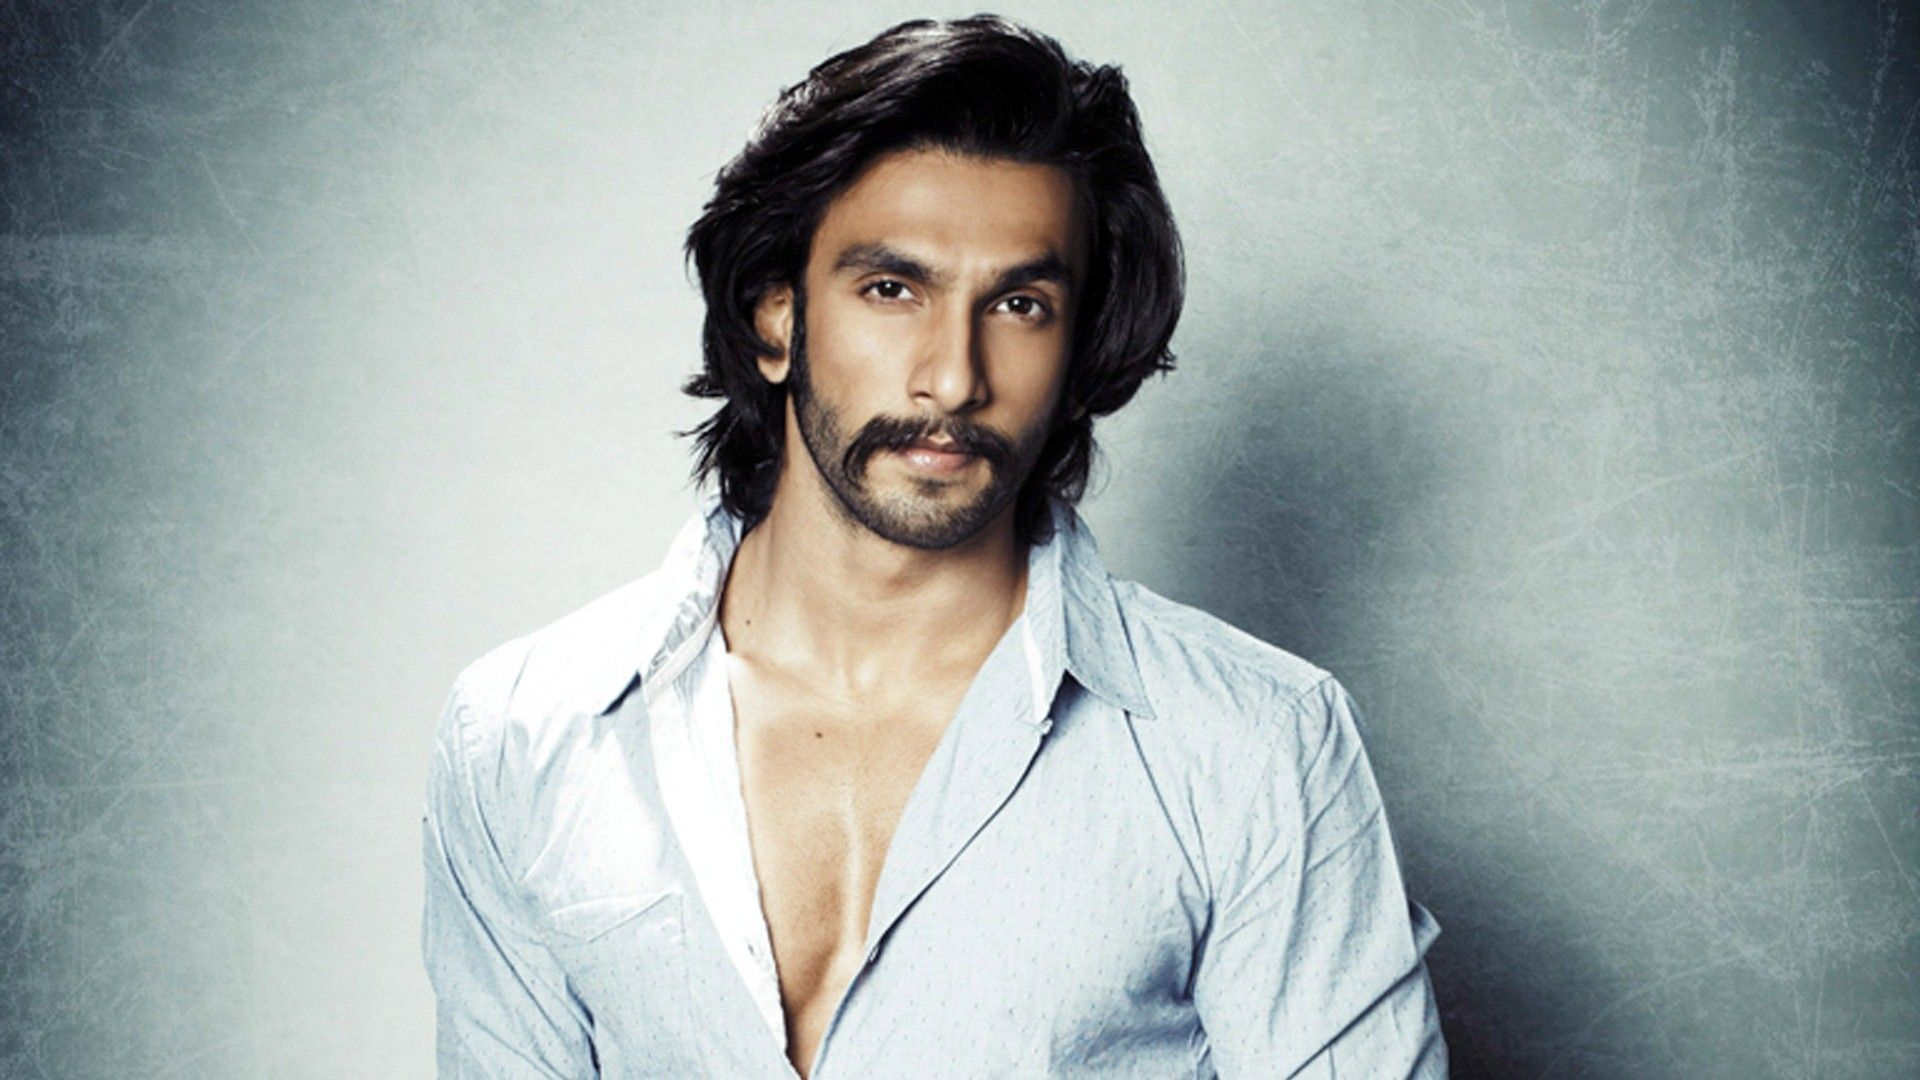 New Latest Hd Images Of Ranveer Singh Bollywood Actor Celebrity